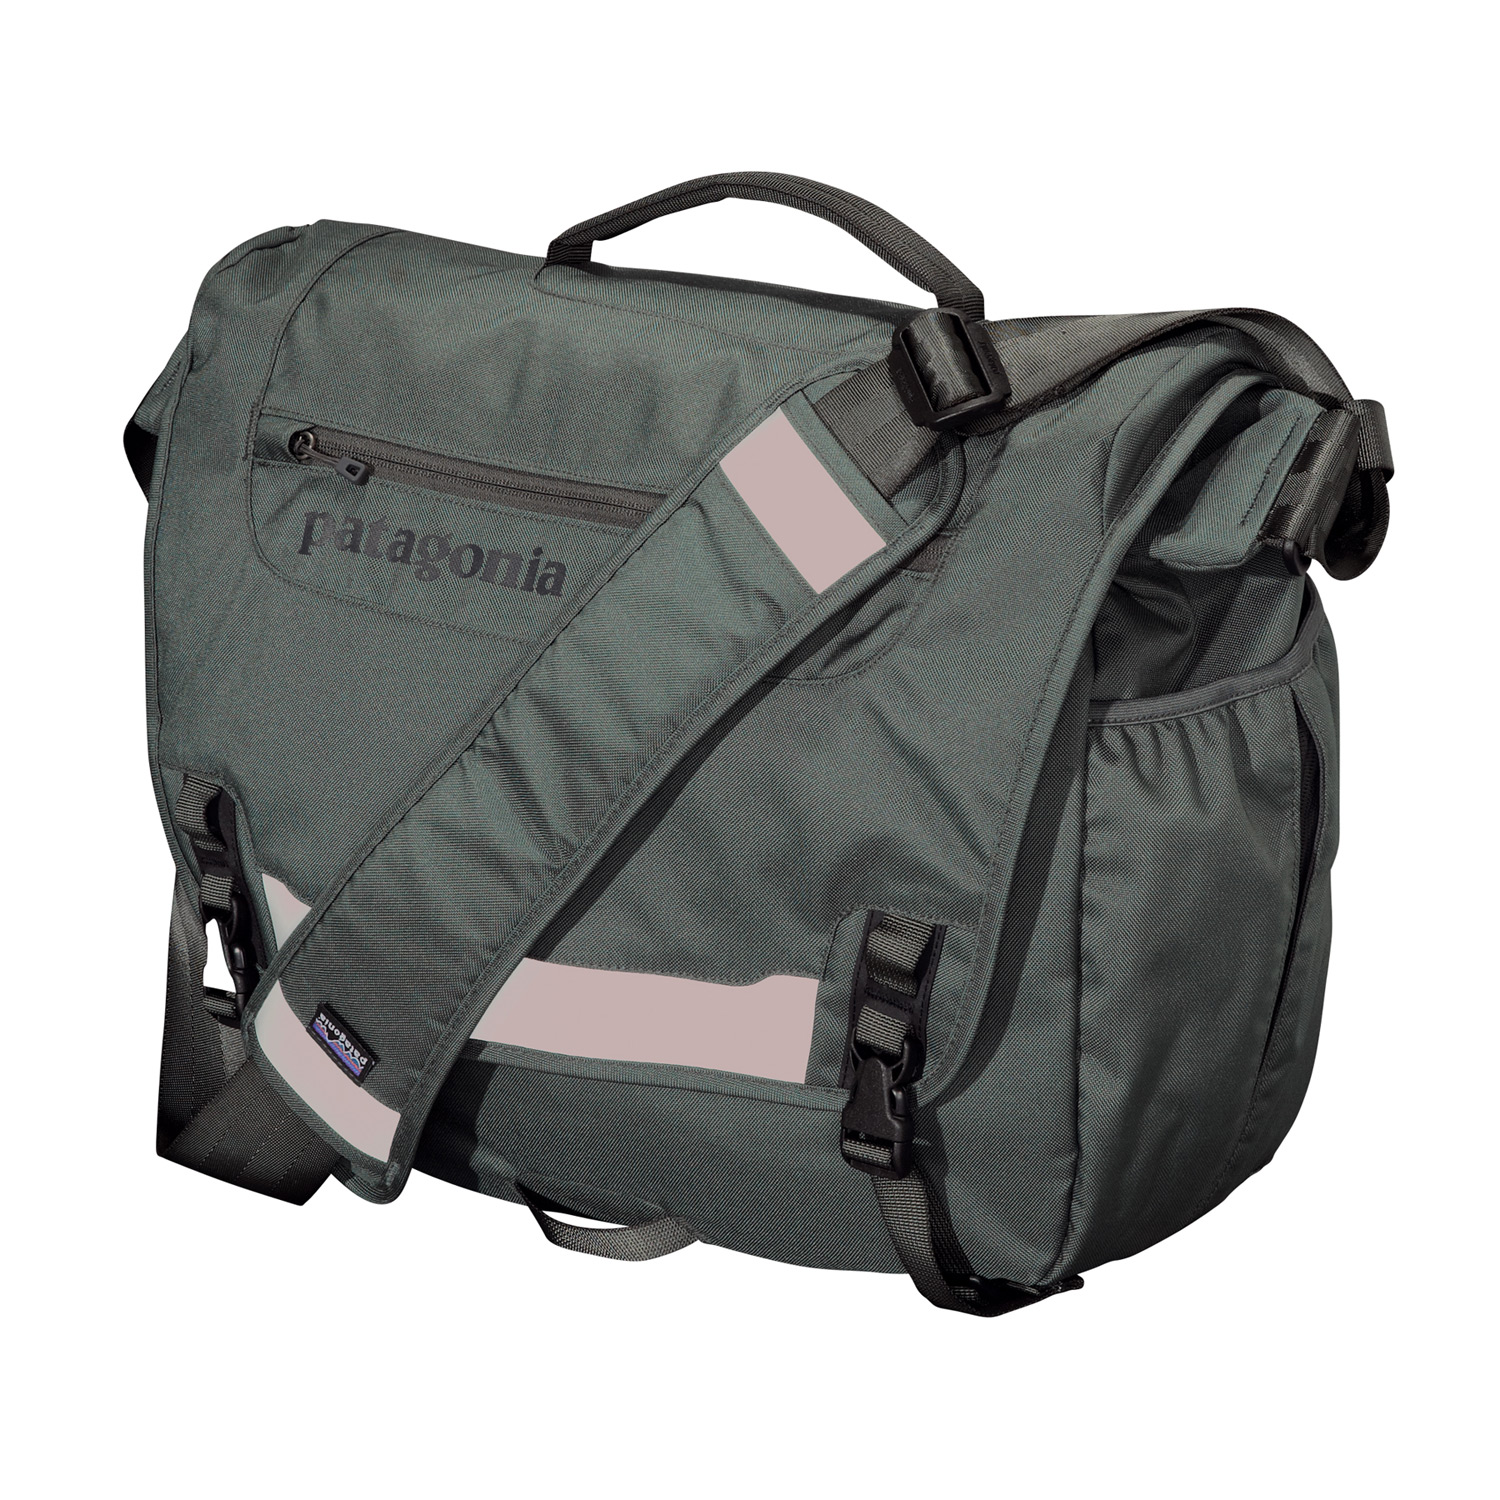 MTB Patagonia's best-selling courier bag, which is made with recycled polyester; laptop compatible. FABRIC: Body: 8.4-oz 600-denier 100% recycled polyester. Lining: 3.3-oz 200-denier polyester. Both with a polyurethane coatingKey Features of the Patagonia Half Mass Bag: Main flap opens to largest compartment, which houses one drop pocket, one zippered mesh pocket, one padded electronics pocket and three slots for pens; zippered pocket on flap has moisture-shedding reverse coil zipper Padded computer sleeve raised off the ground accommodates up to a 17? laptop; secures with a buckle and strap Front flap features improved reflective panel and a webbing bike-light mount Side-mounted exterior water bottle pocket Interior drop pocket secures with hook-and-loop tab for quick access to boarding passes, magazines or newspapers Fully adjustable shoulder strap with floating pad, three-point adjustable stability strap and top-side carrying handle - $61.95